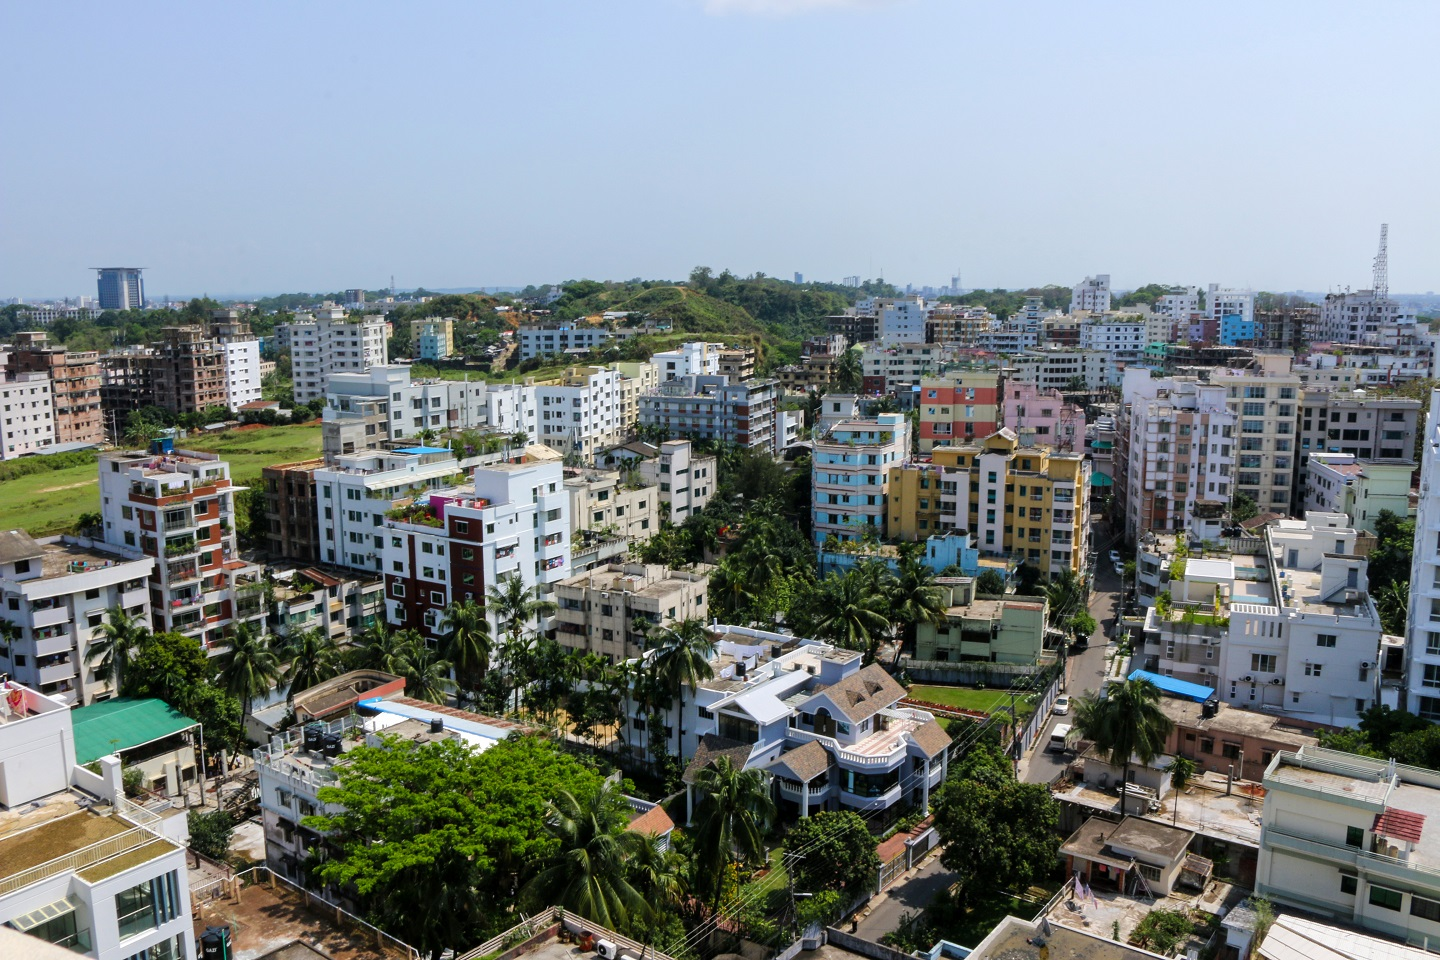 Price of apartments adjusts to market supply and demand